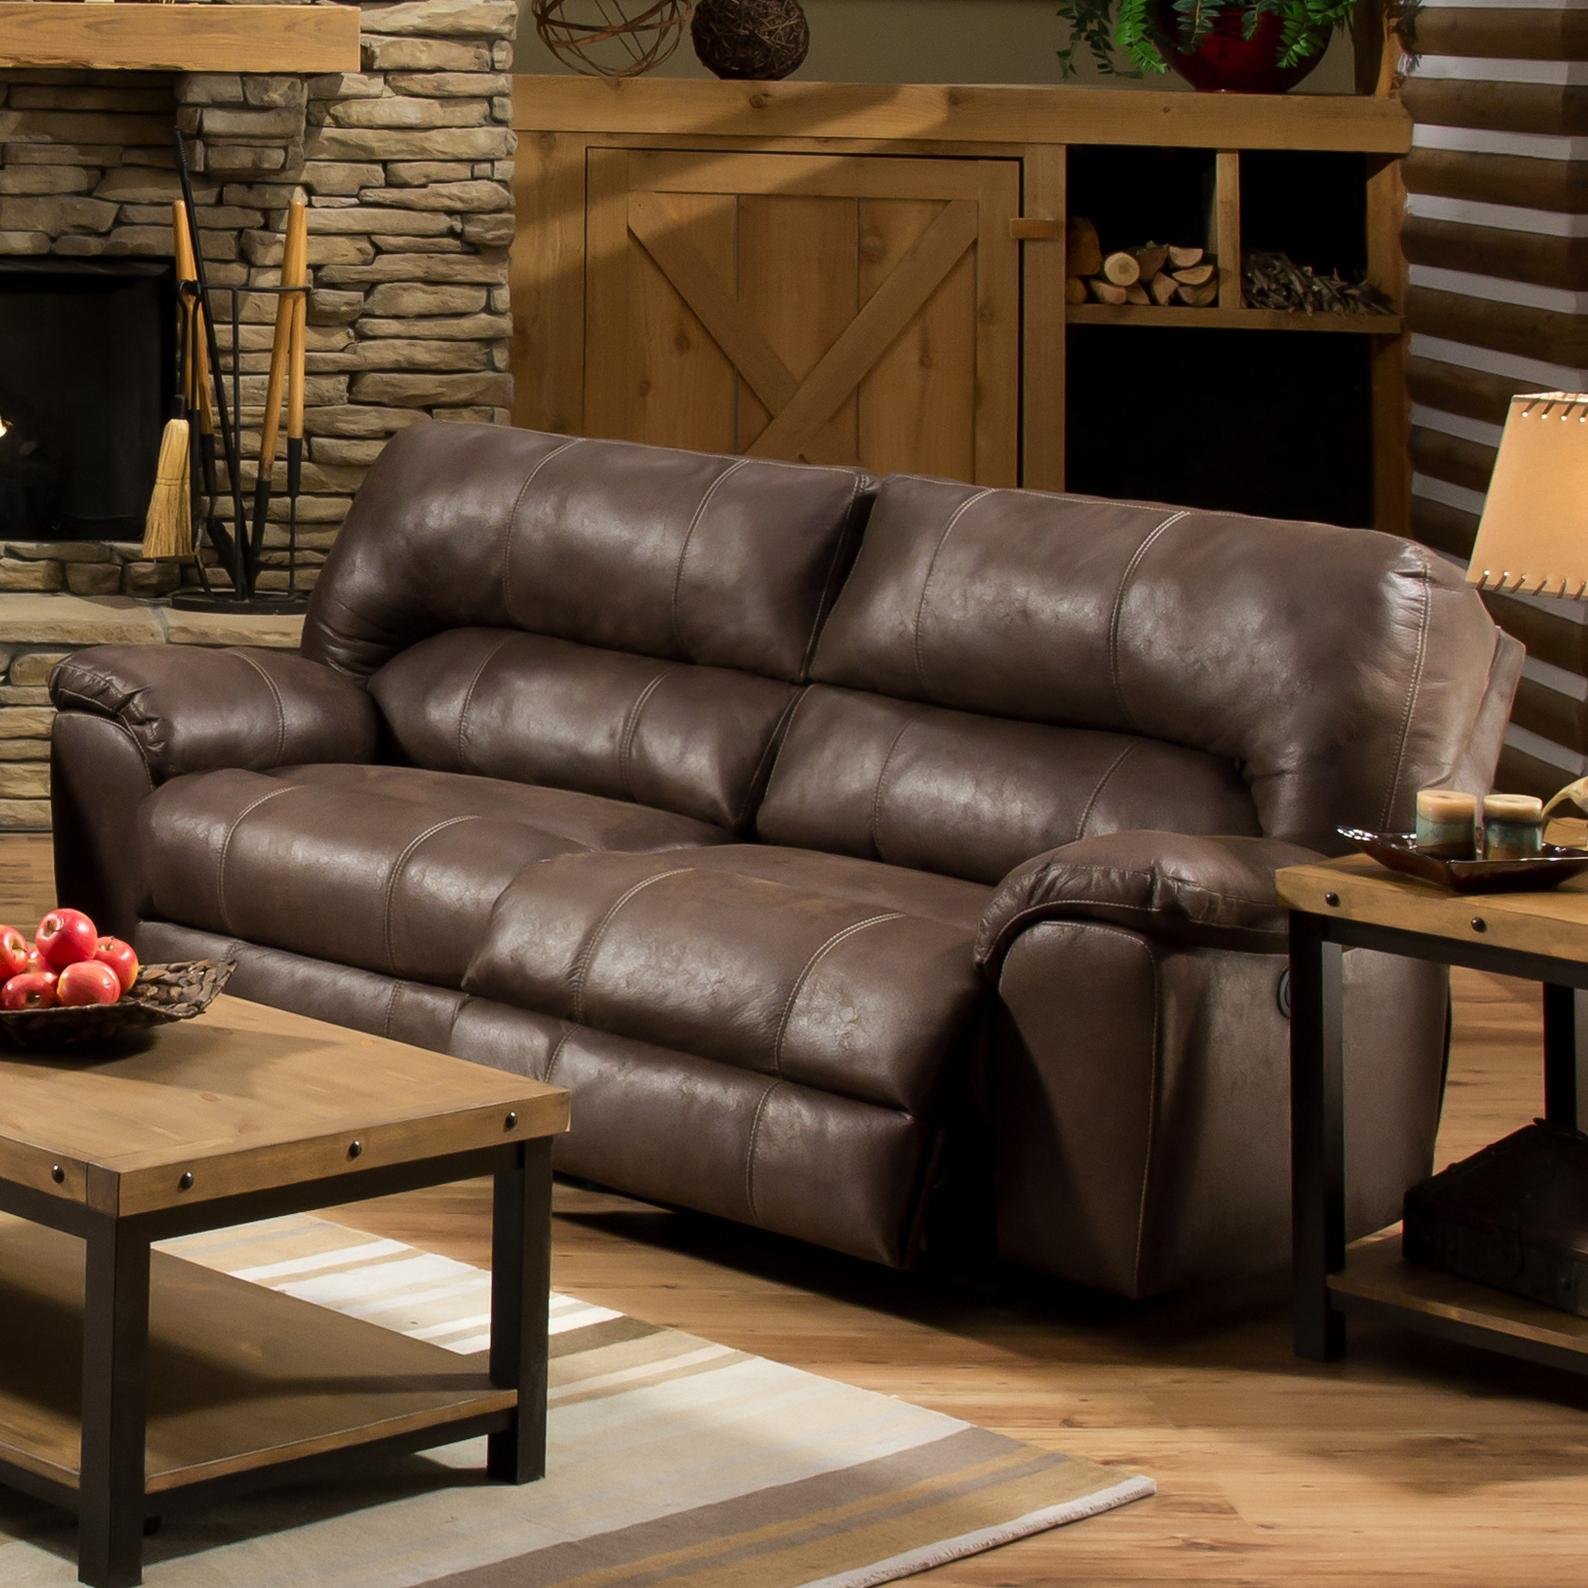 American Furniture Af740 Reclining Sofa With Headrest